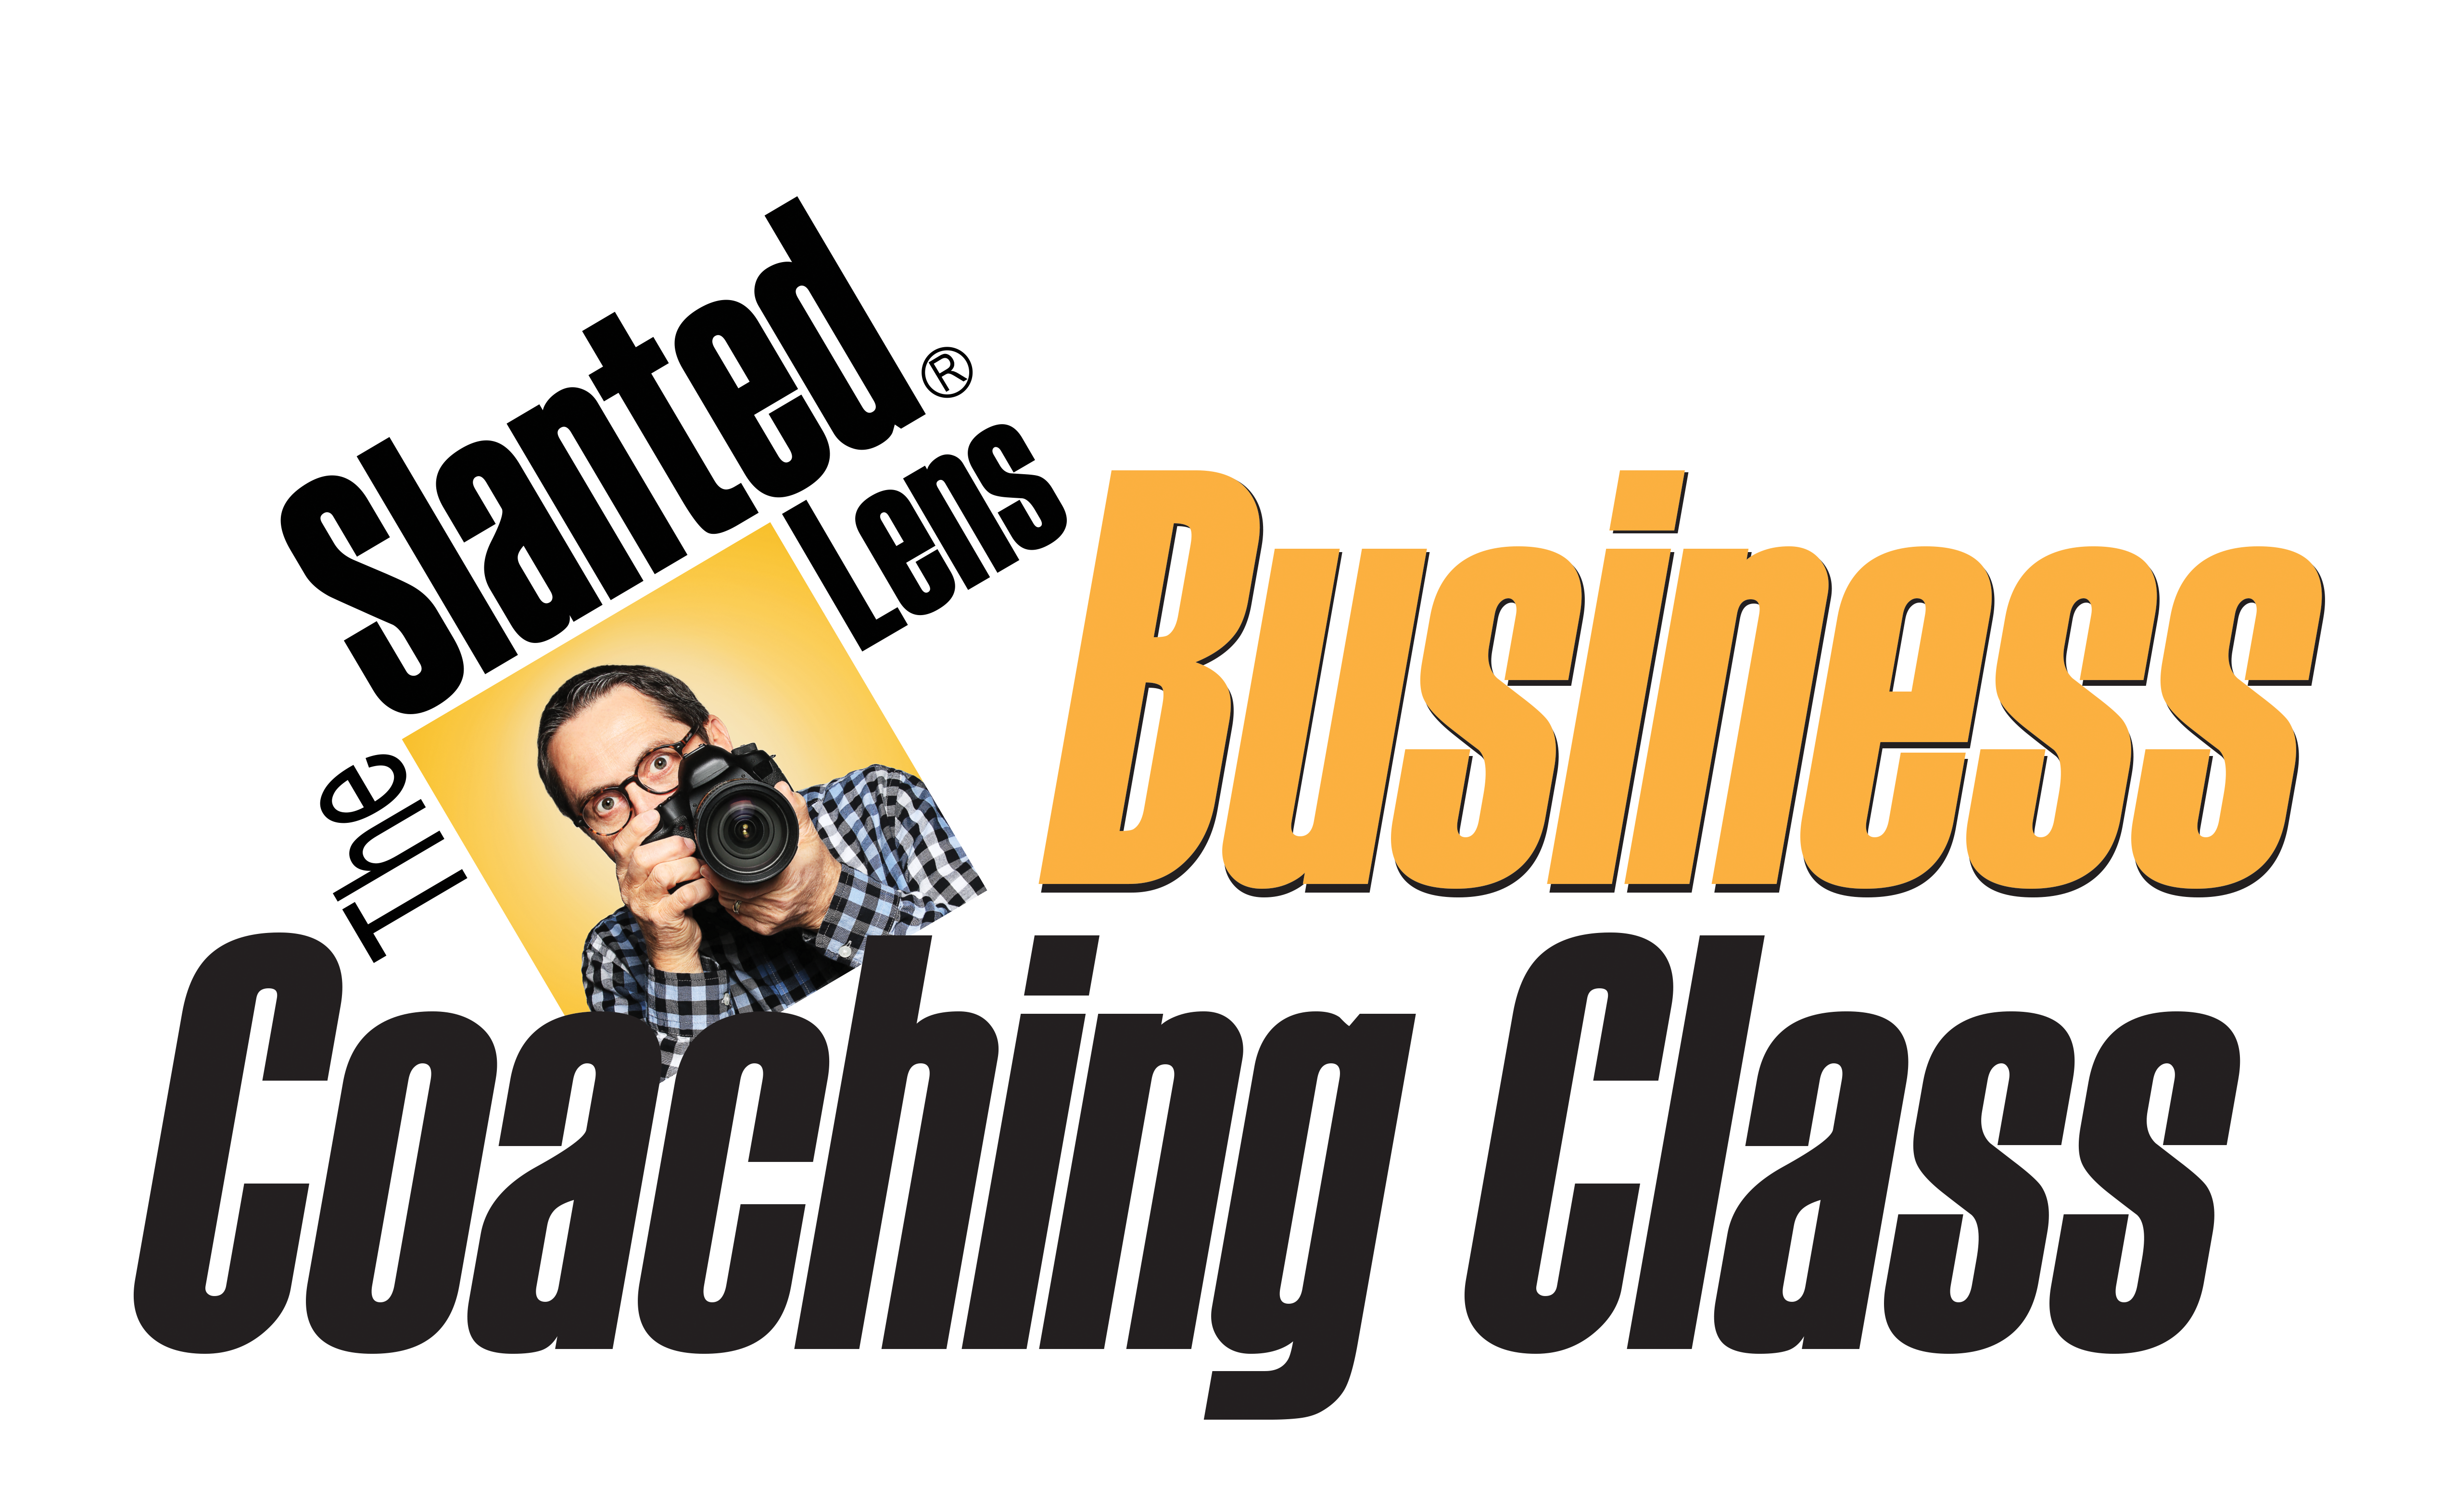 Class of 2016 png. Business coaching logo the